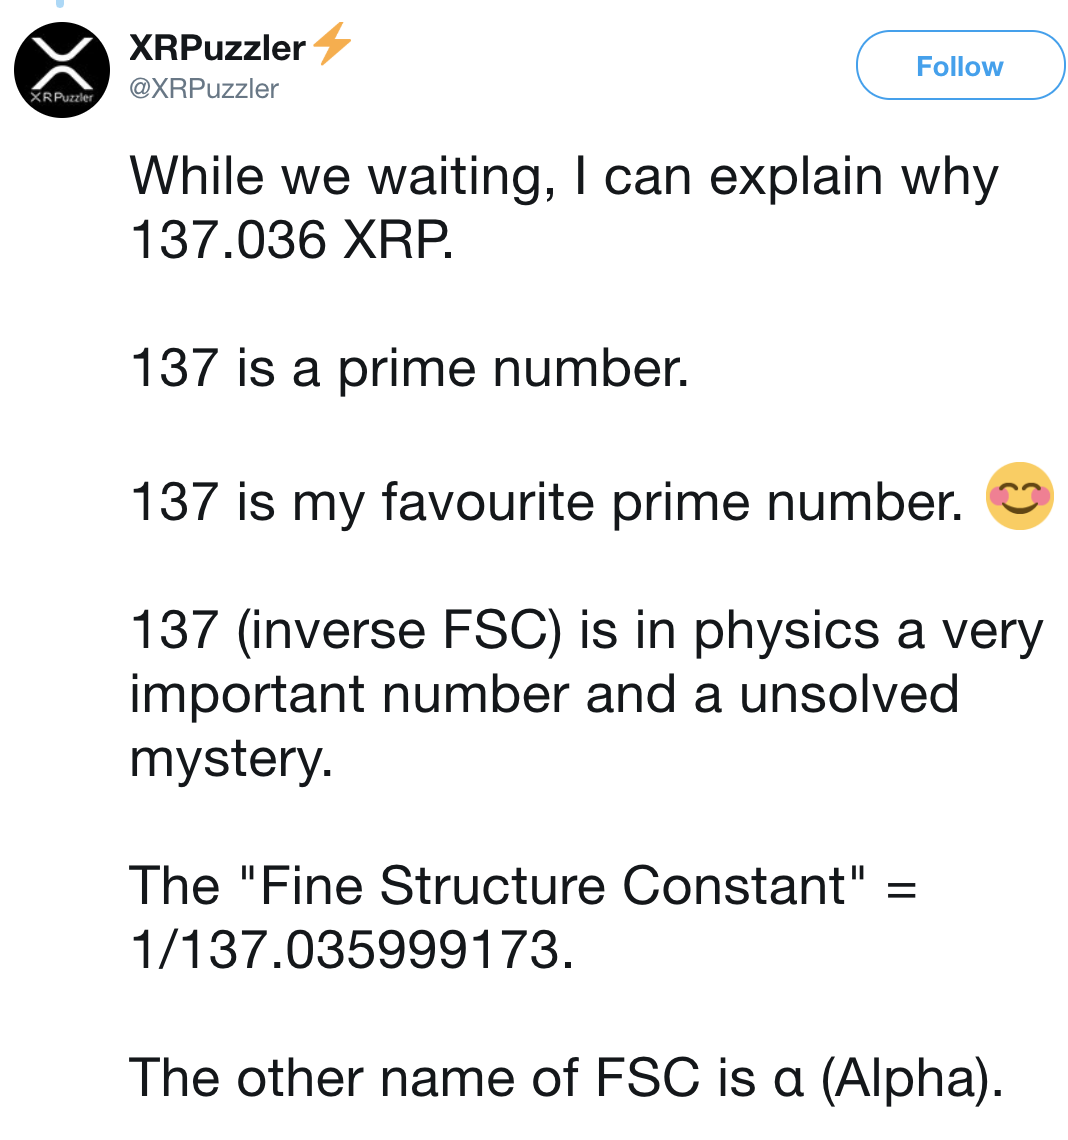 Kutlusoy's explains why 137 XRP | Source: Twitter